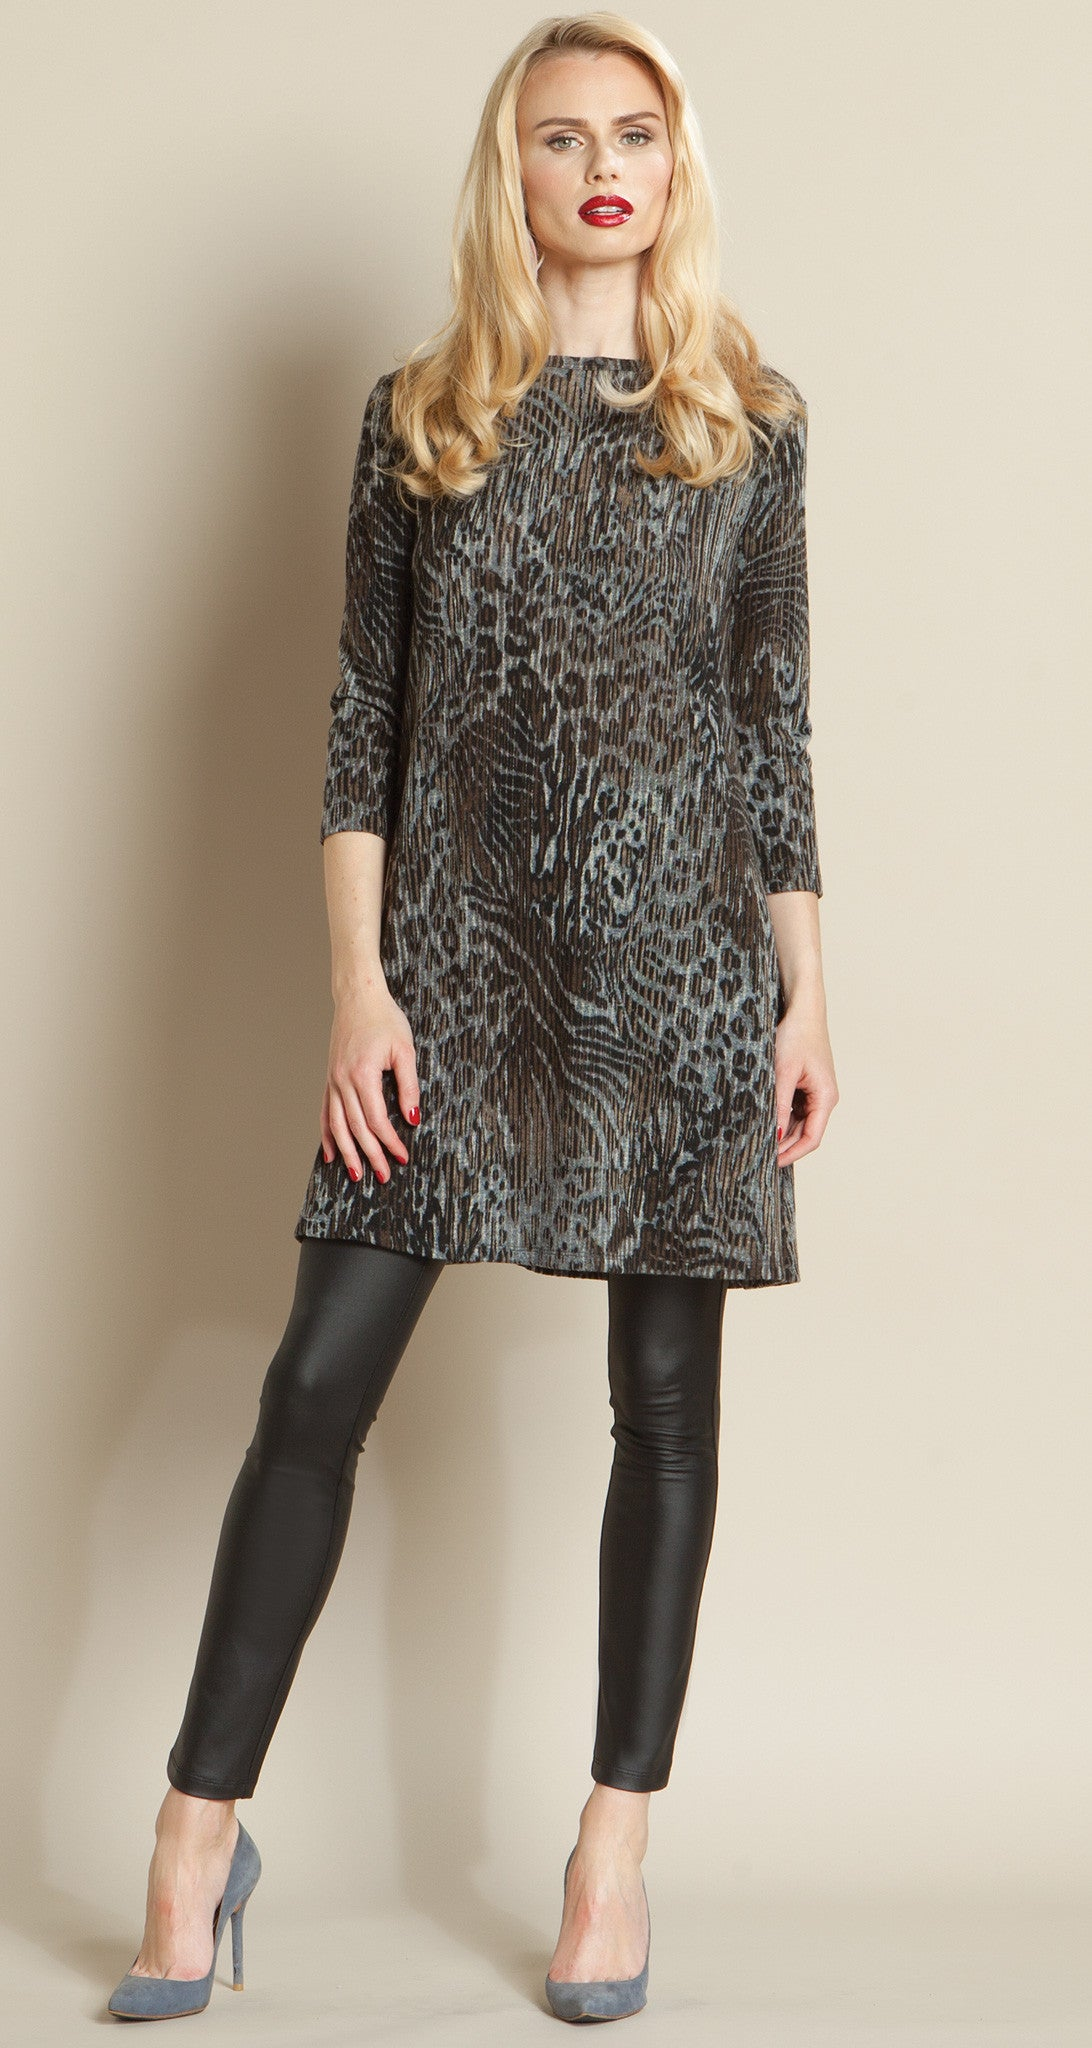 Animal Print Sweater Tunic Dress - Charcoal – Clara Sunwoo